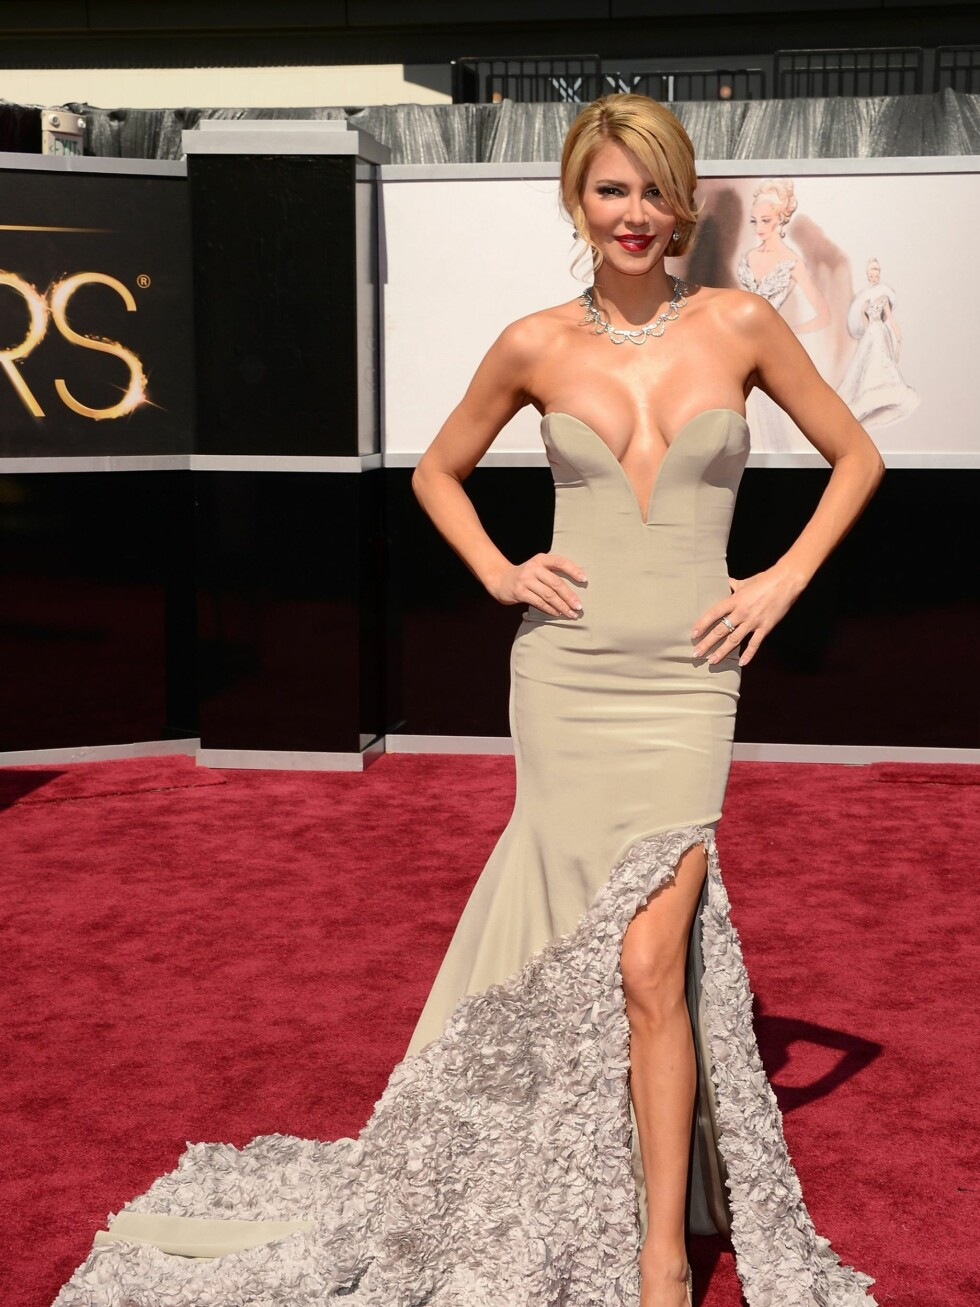 Brandi Glanville Foto: All Over Press